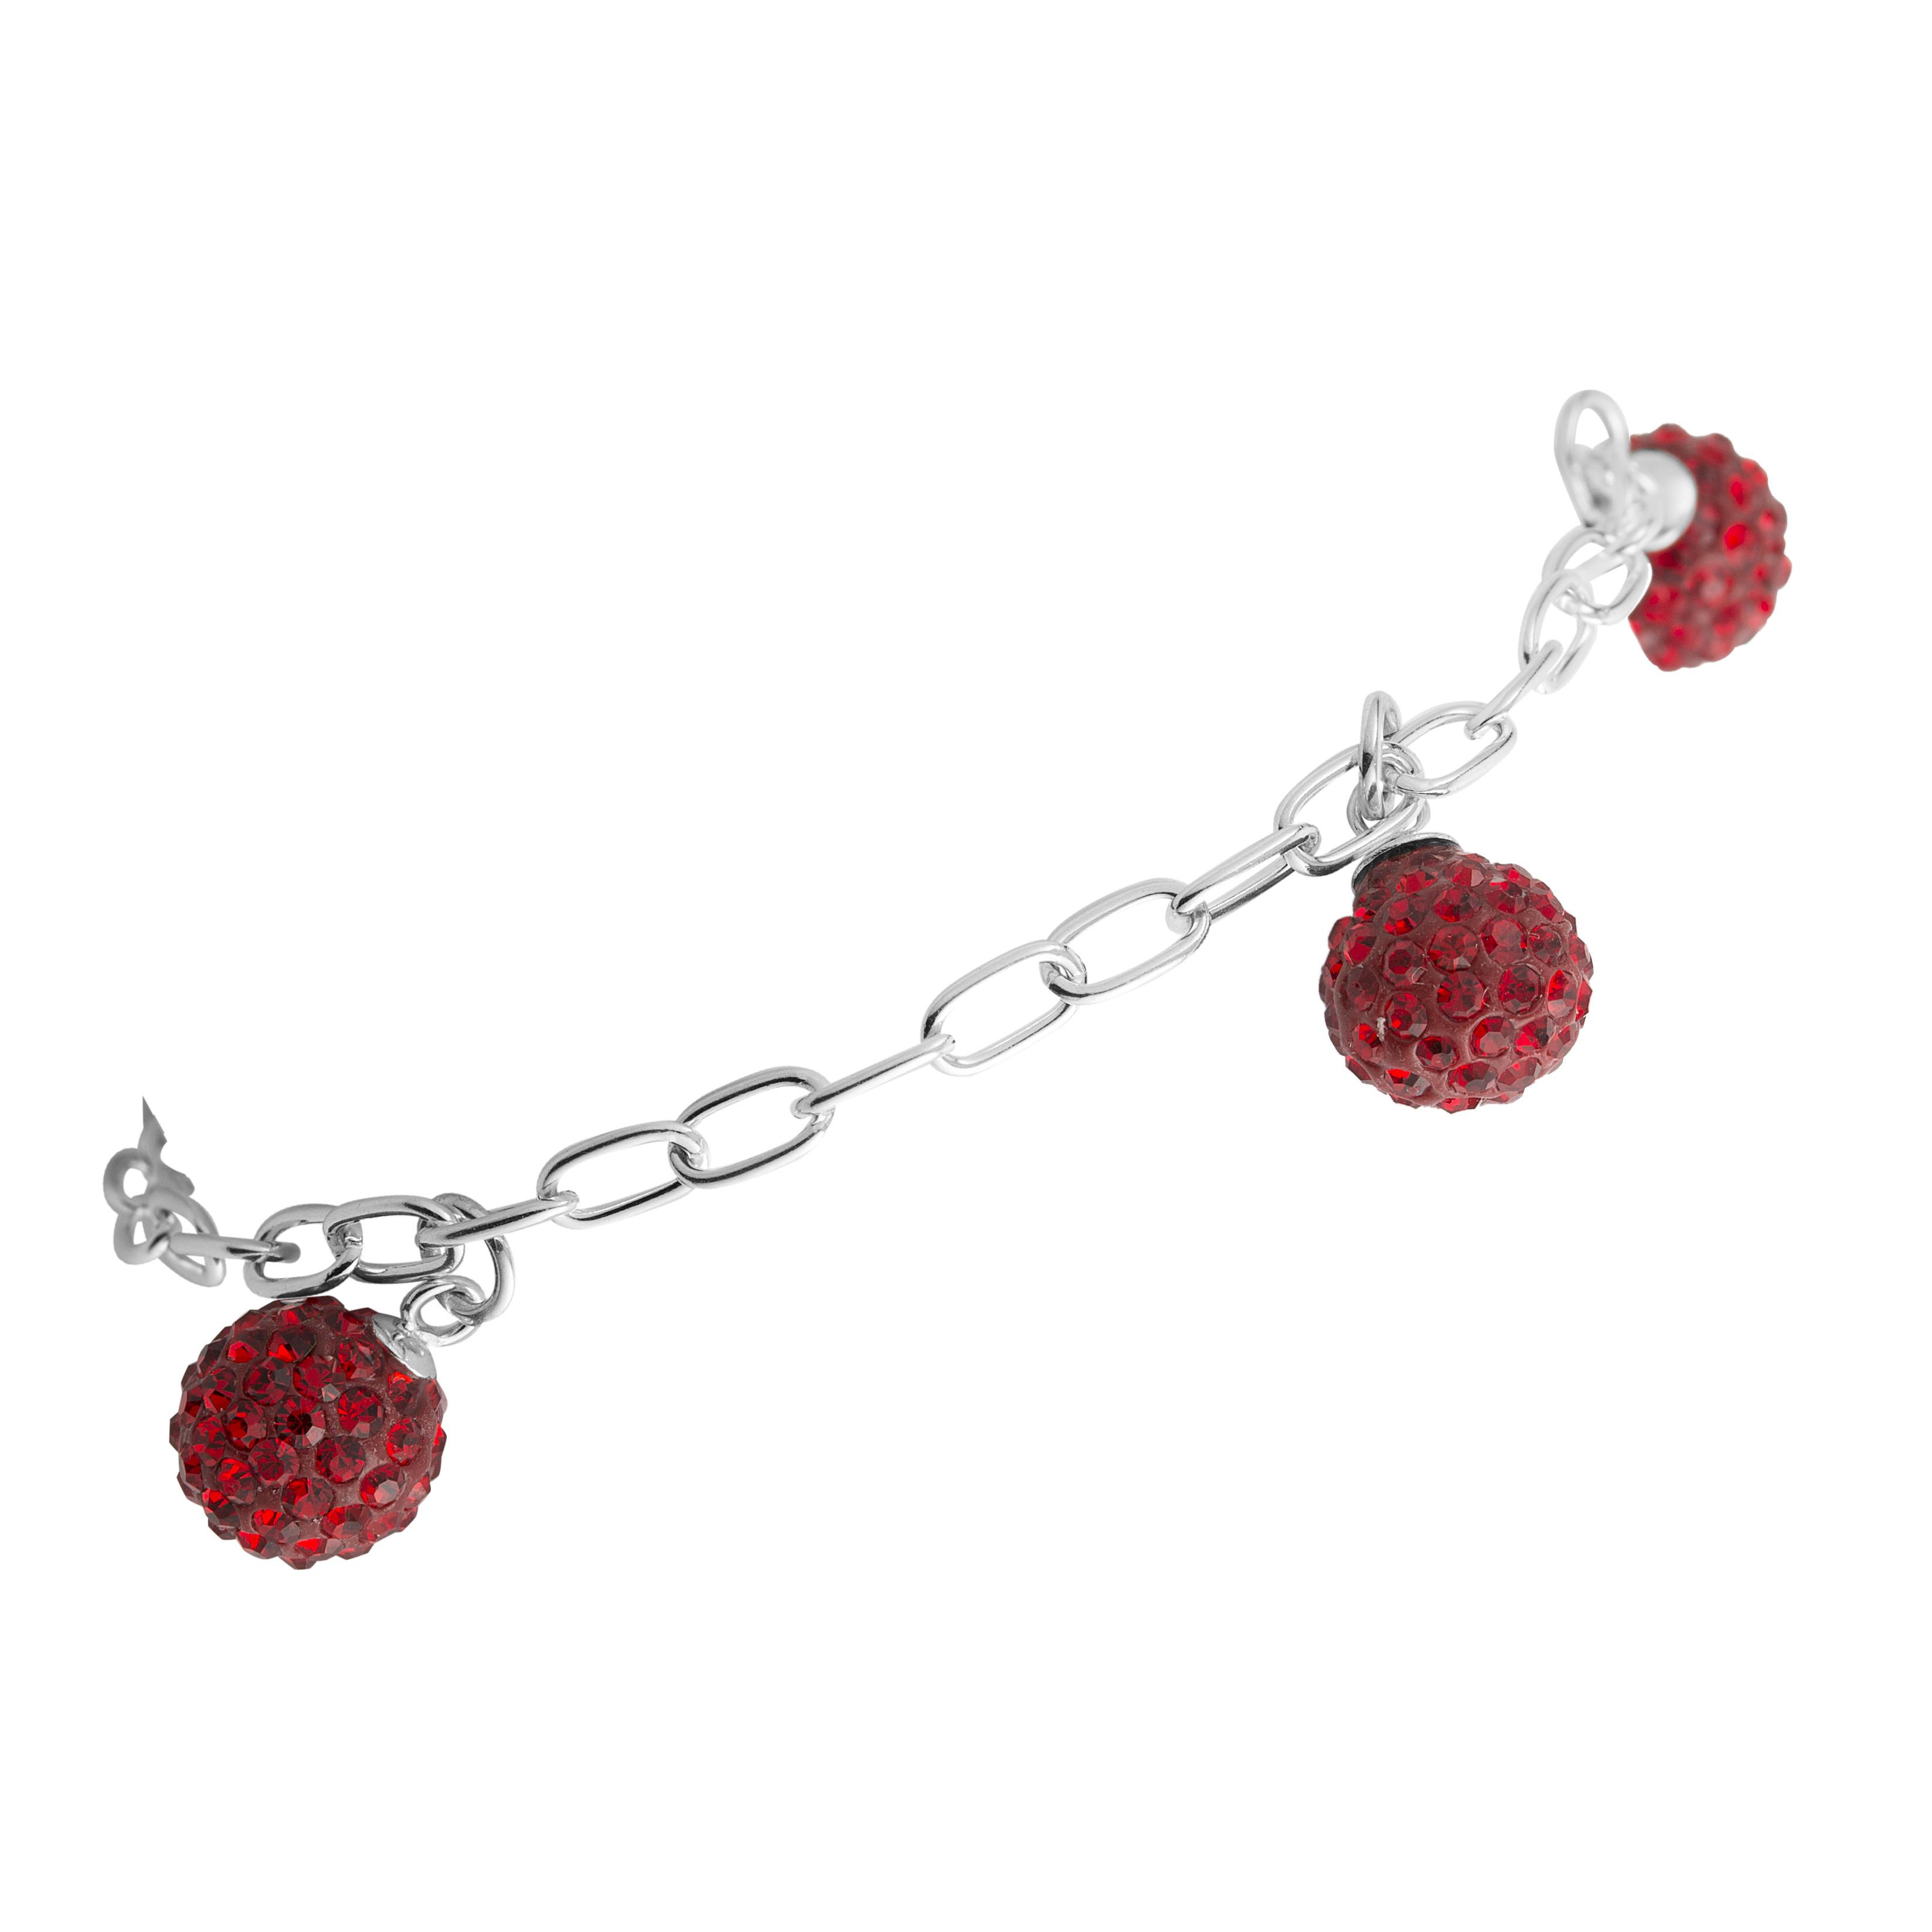 925 Sterling Silver Charm Bracelet, Red Crystal Glass Balls, Nickel Free, Jewelry For Women, Girls